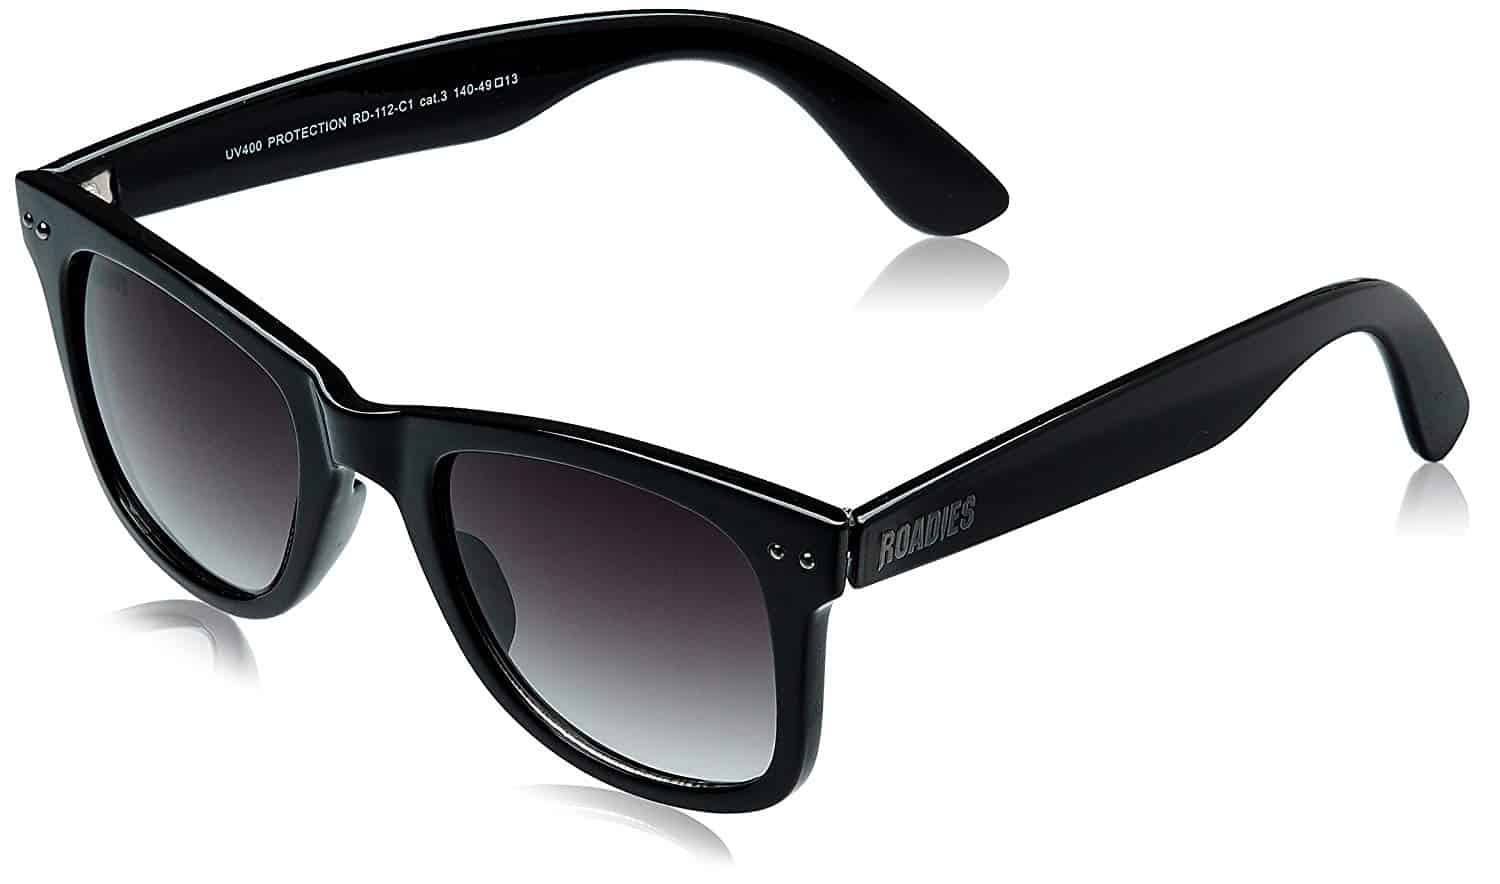 Best 4 Star plus Sunglasses on Amazon Under INR 1400